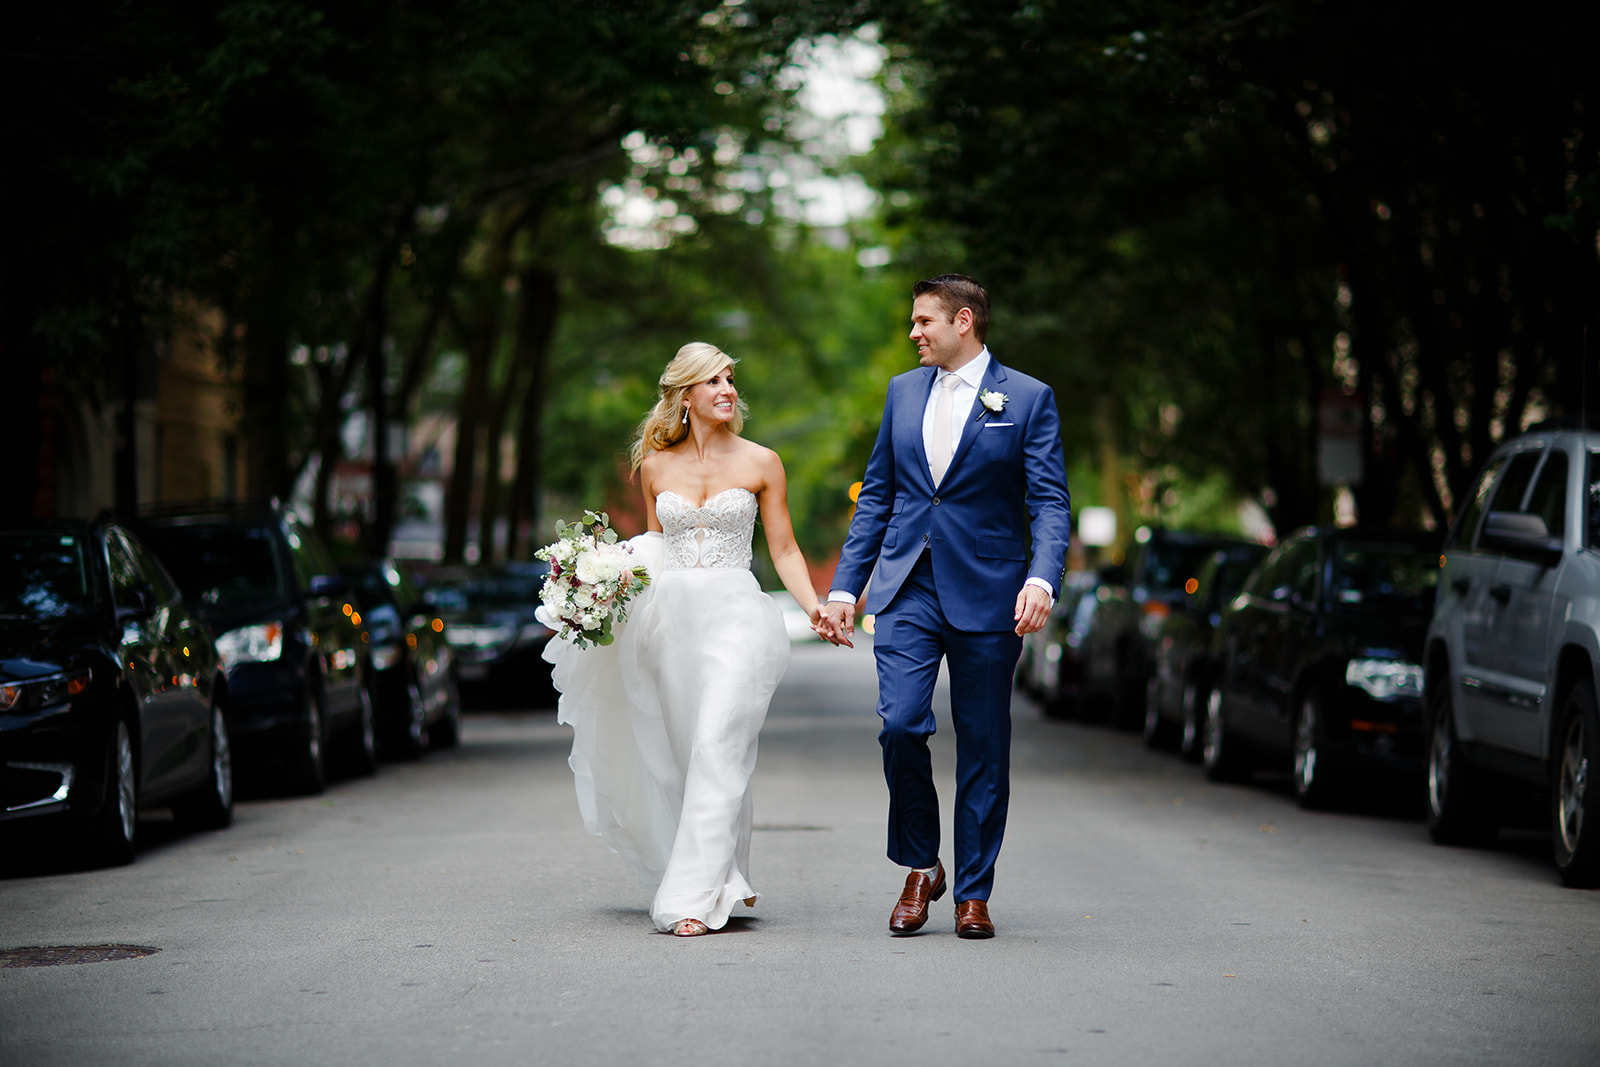 Beth told us she loves the brownstones in the Gold Coast neighborhood and wanted relaxed pictures of the two of them strolling down the street.